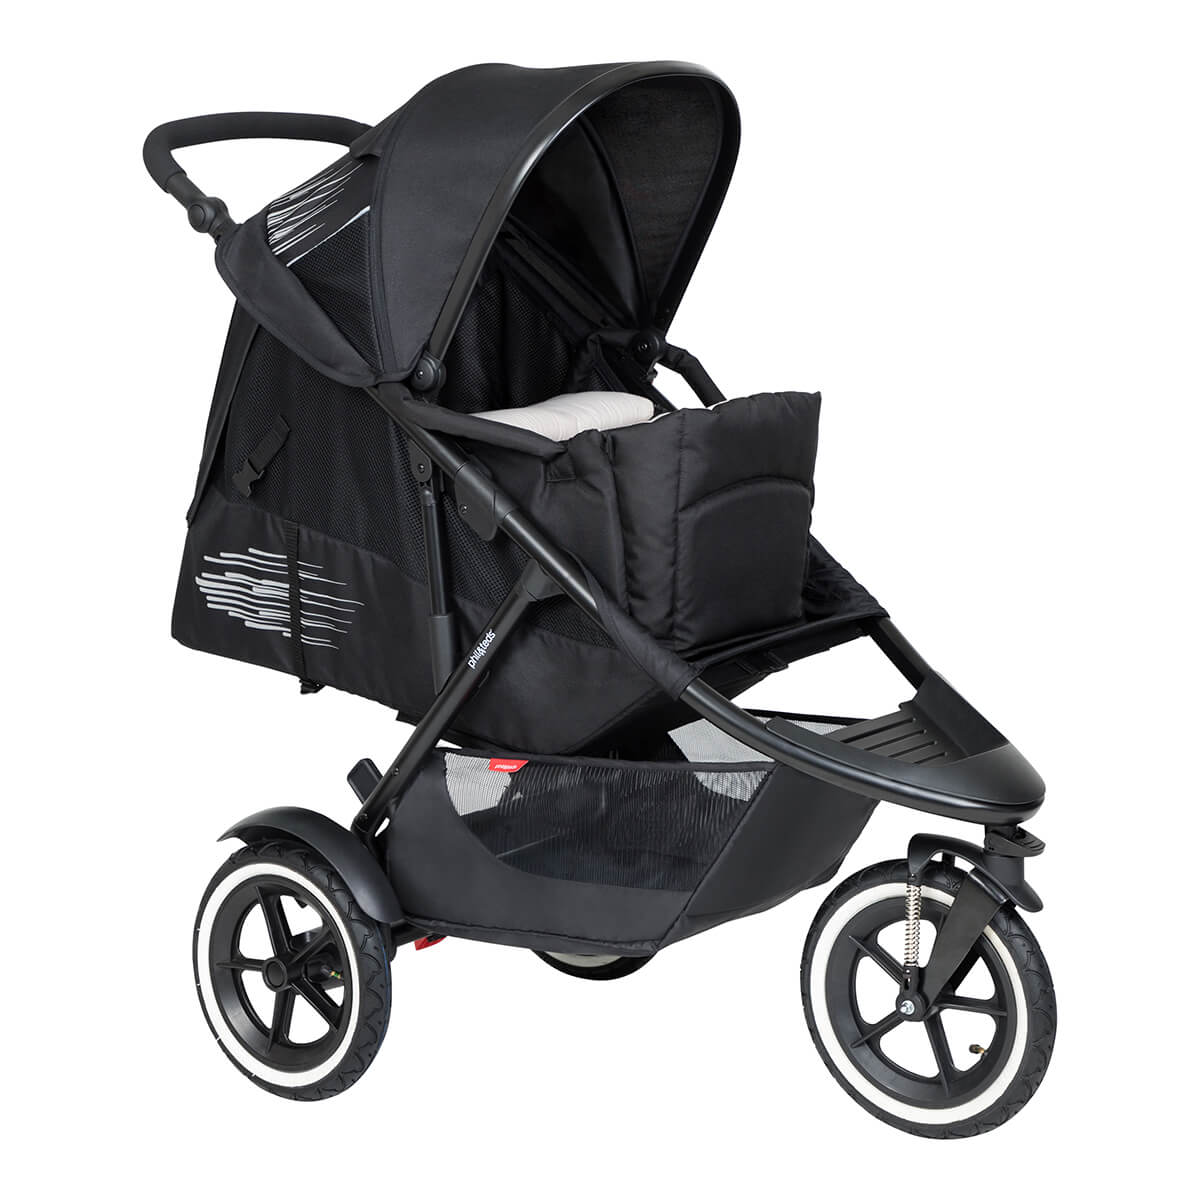 https://cdn.accentuate.io/4513463238752/19440099360952/philteds-sport-buggy-with-cocoon-full-recline-v1626486626541.jpg?1200x1200